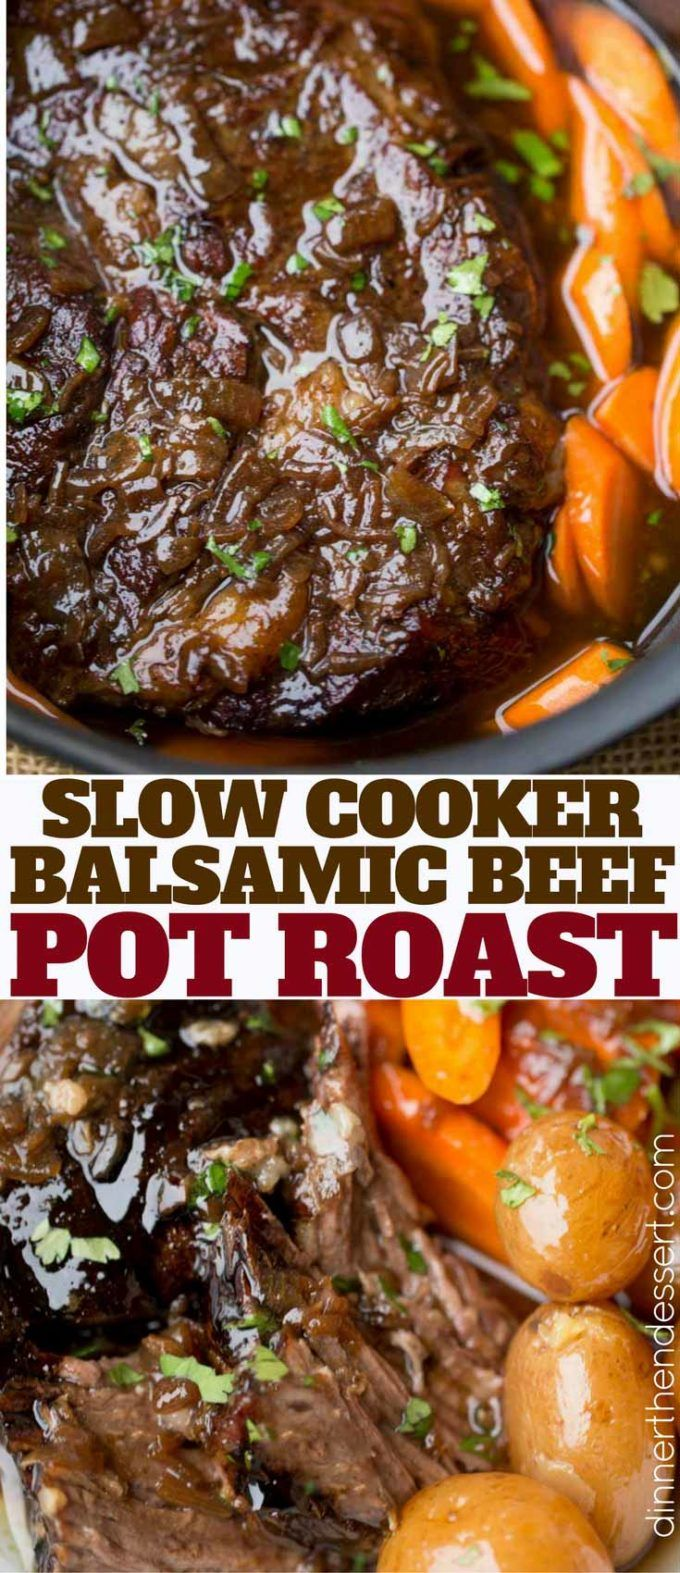 One pot meal, this Slow Cooker Balsamic Pot Roast has carrots and potatoes too.